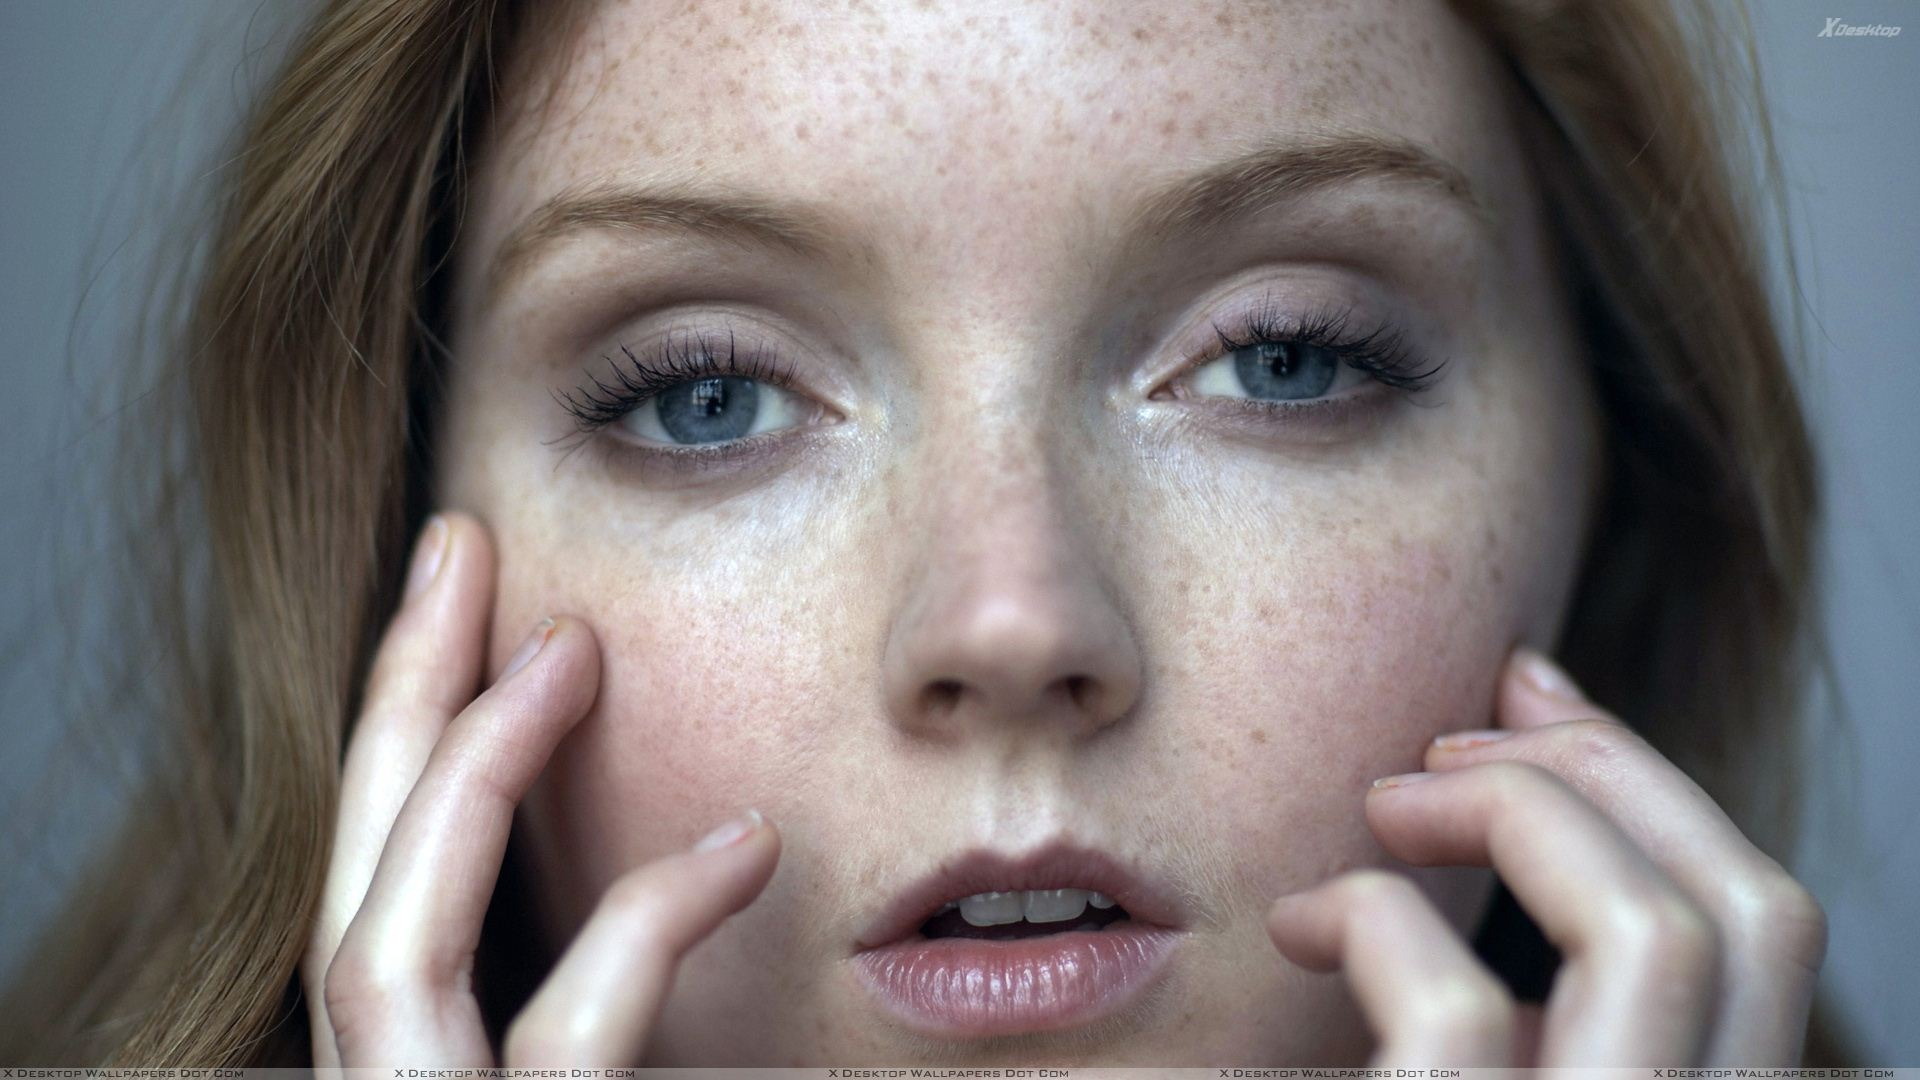 lily cole 2016lily cole instagram, lily cole profile, lily cole pinterest, lily cole photo, lily cole 2016, lily cole 2017, lily cole and magnus carlsen, lily cole listal, lily cole st trinian's, lily cole continuum, lily cole fan, lily cole ekşi, lily cole chanel, lily cole models, lily cole facebook, lily cole parnassus, lily cole heath ledger, lily cole tumblr, lily cole biography, lily cole wiki